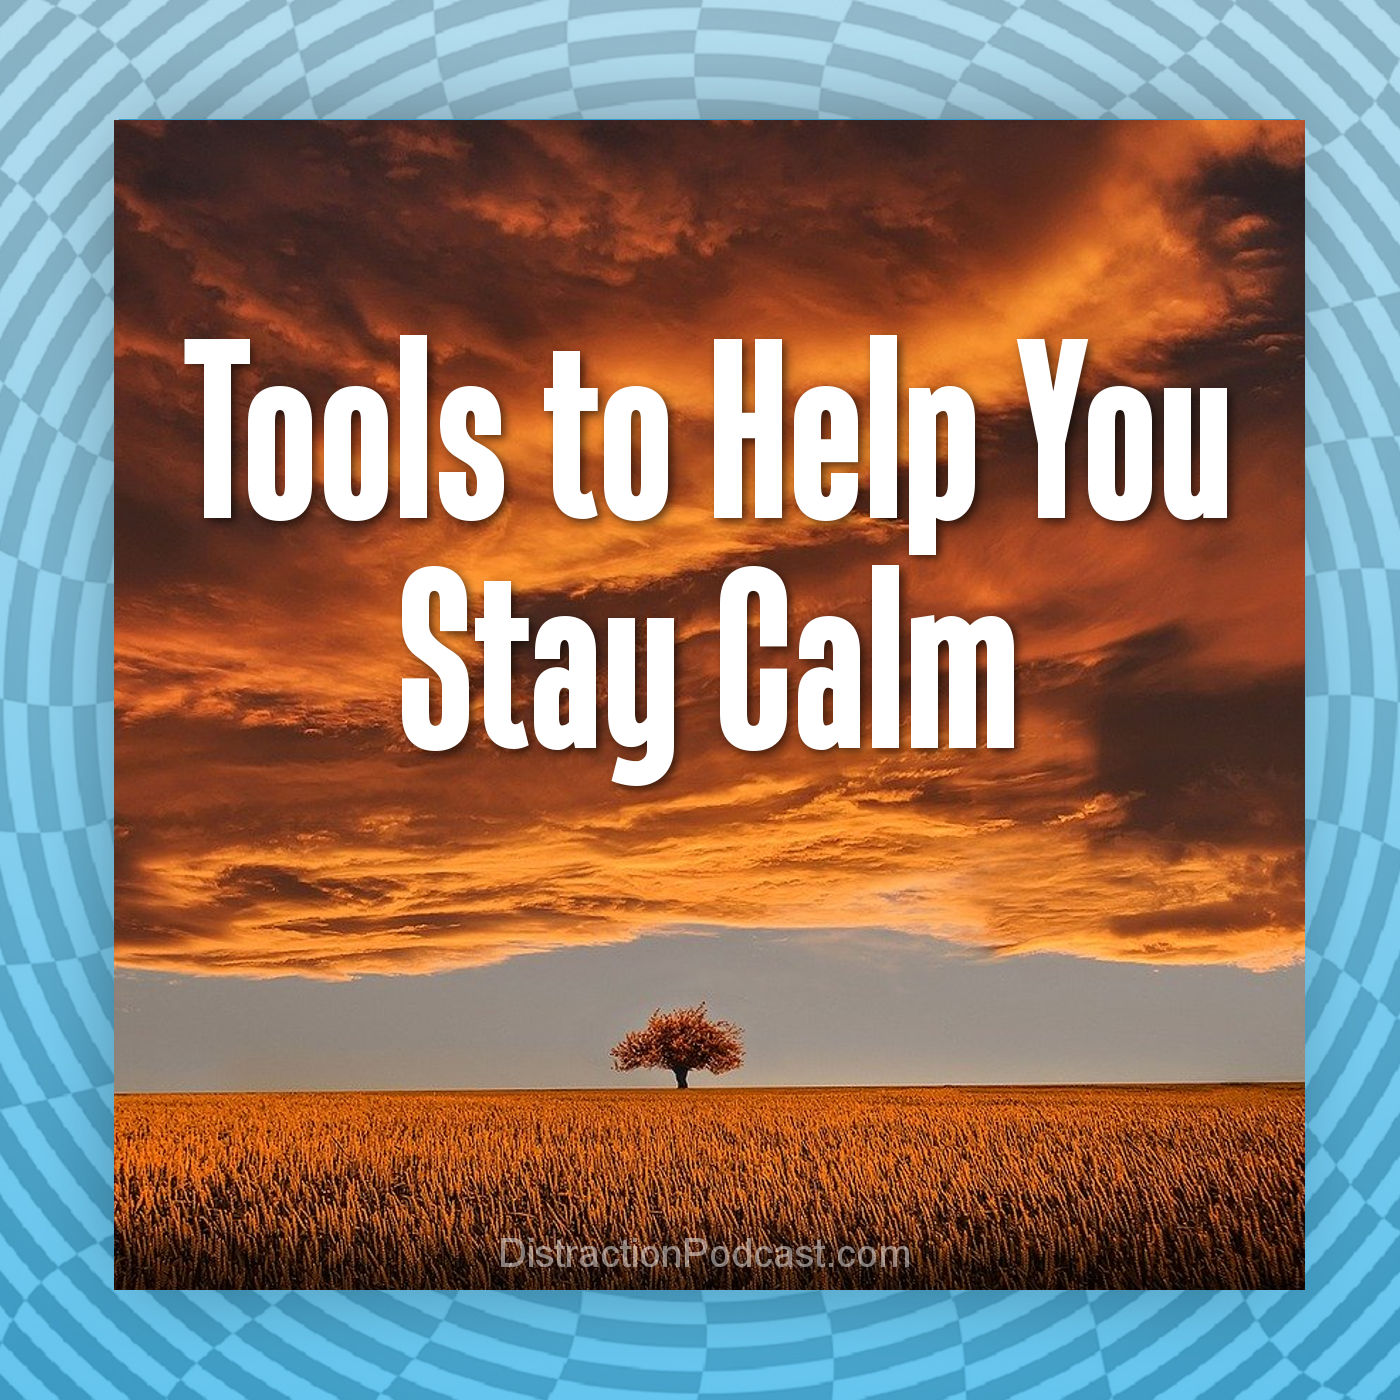 Tools to Help You Stay Calm